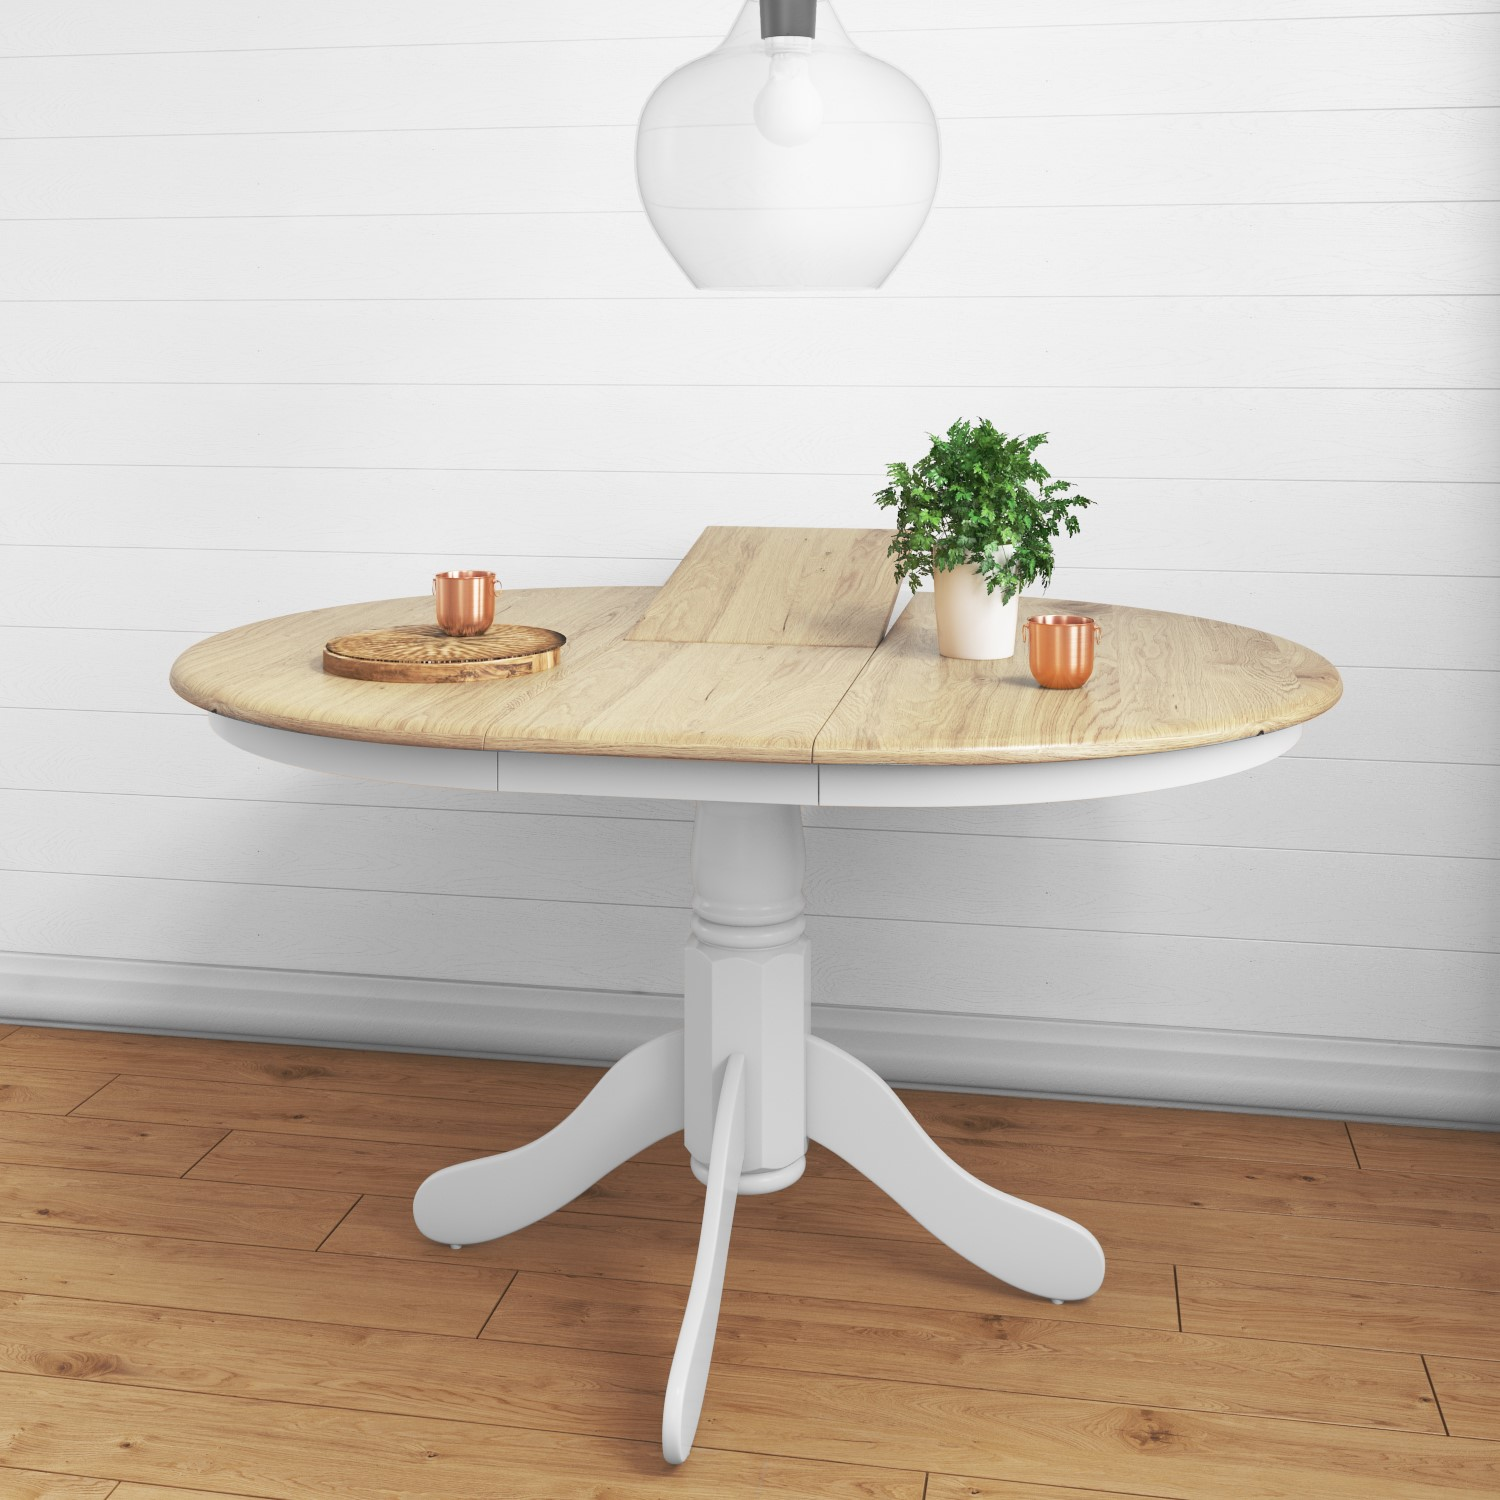 Rhode Island Round Extending Kitchen Dining Table With 4